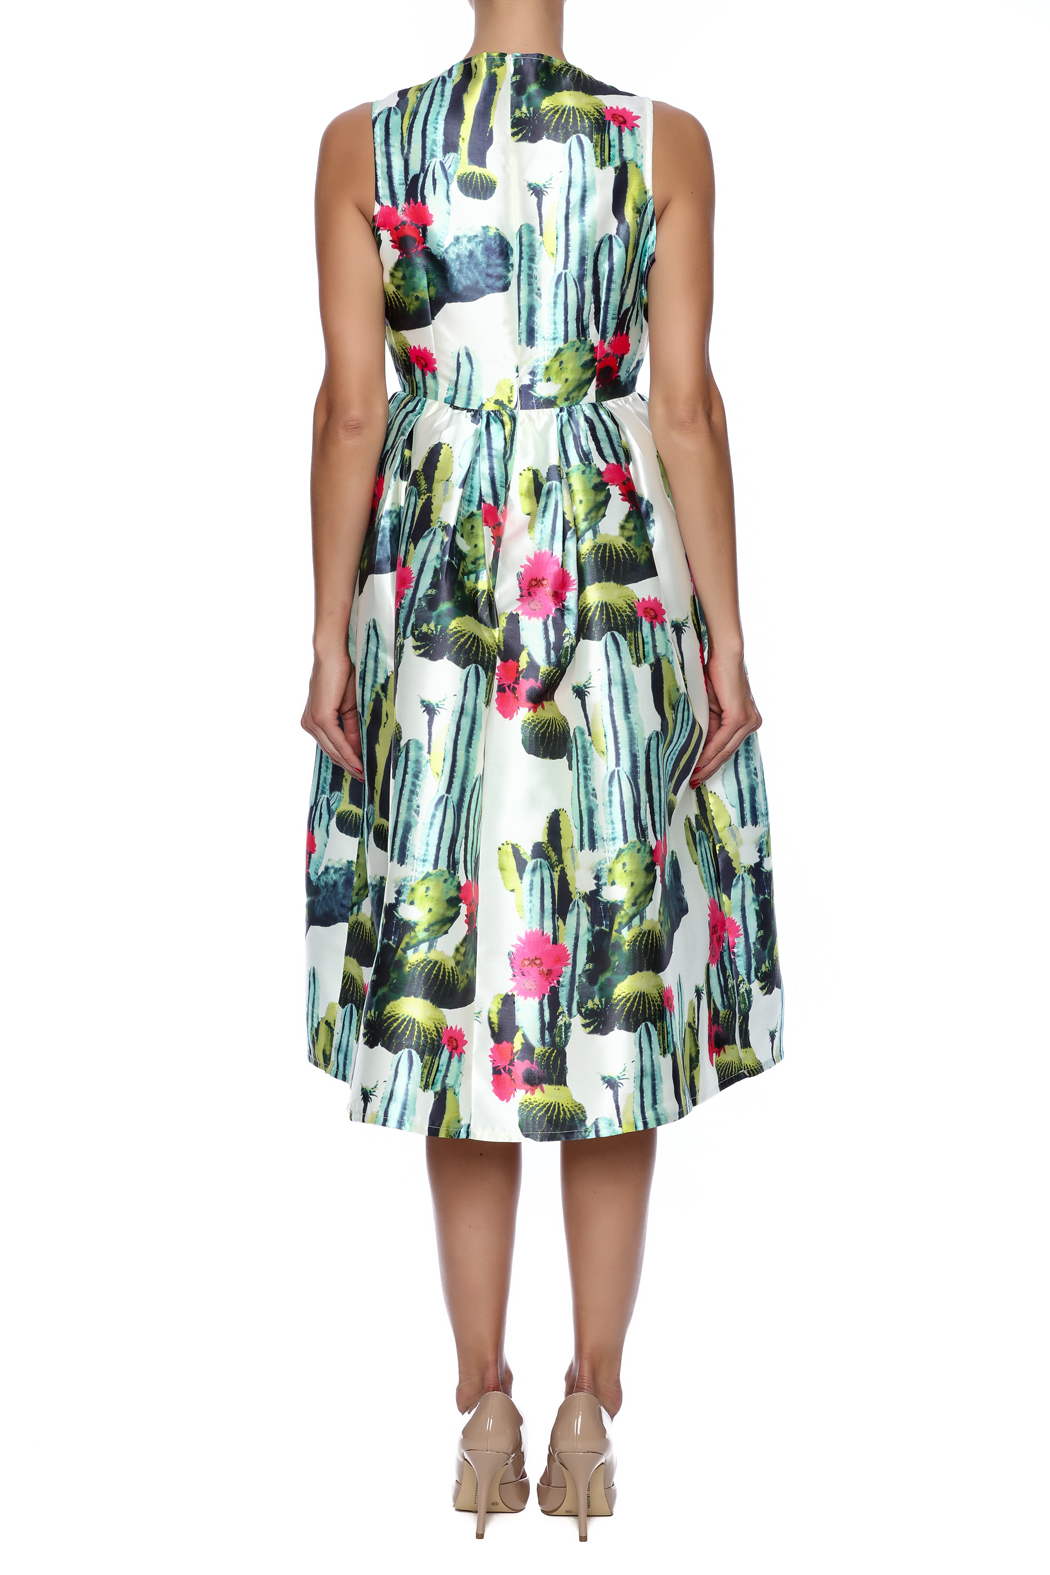 Blaque Label Cactus Print Dress From Texas By The Hen